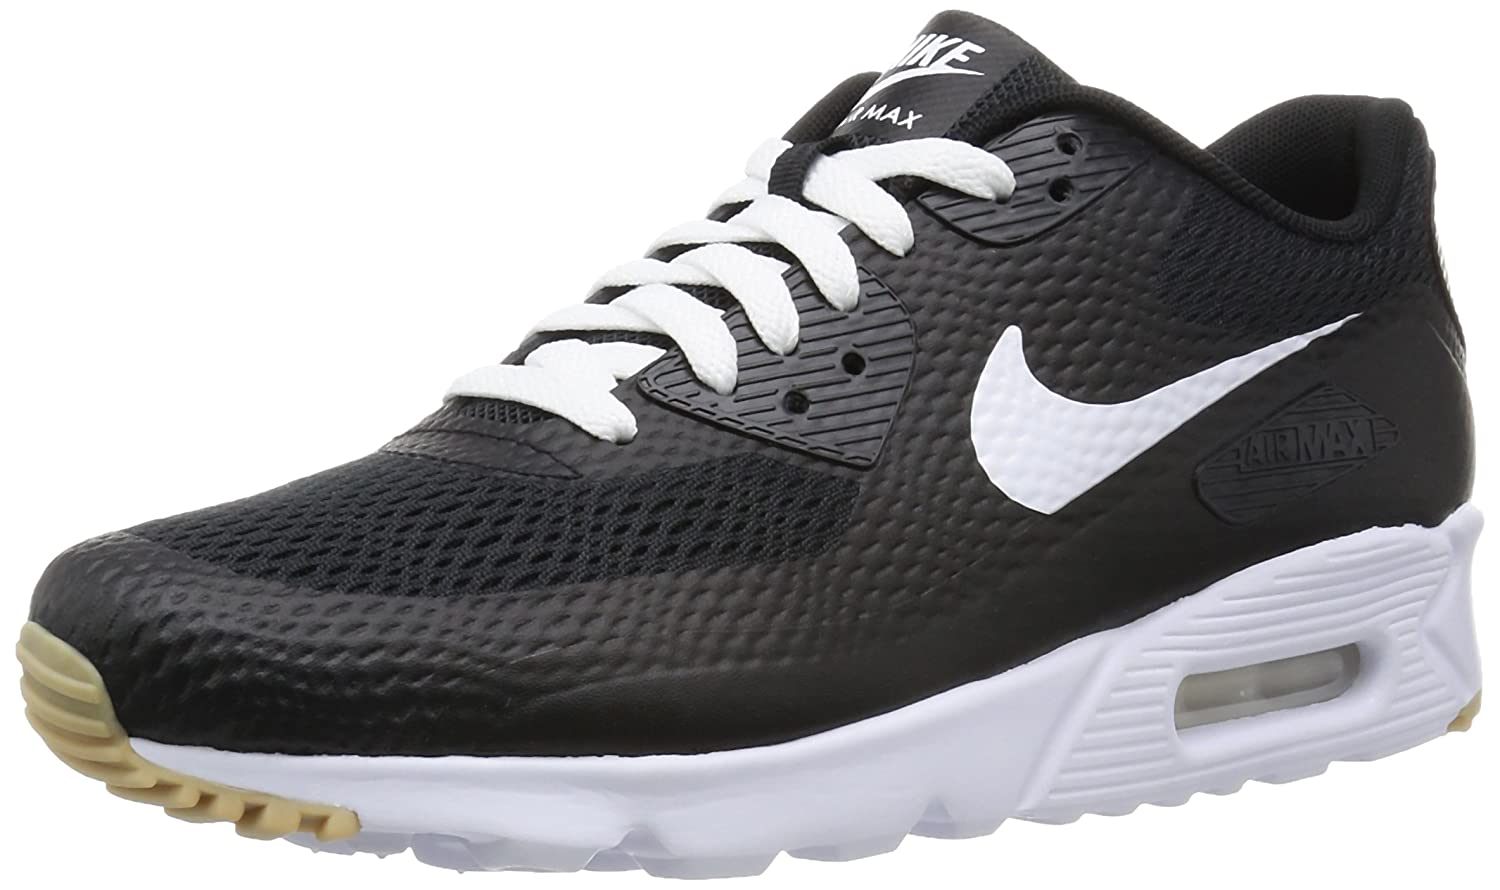 competitive price 2cd63 1b092 Amazon.com   Nike Men s Air Max 90 Ultra Essential Running Shoe   Road  Running